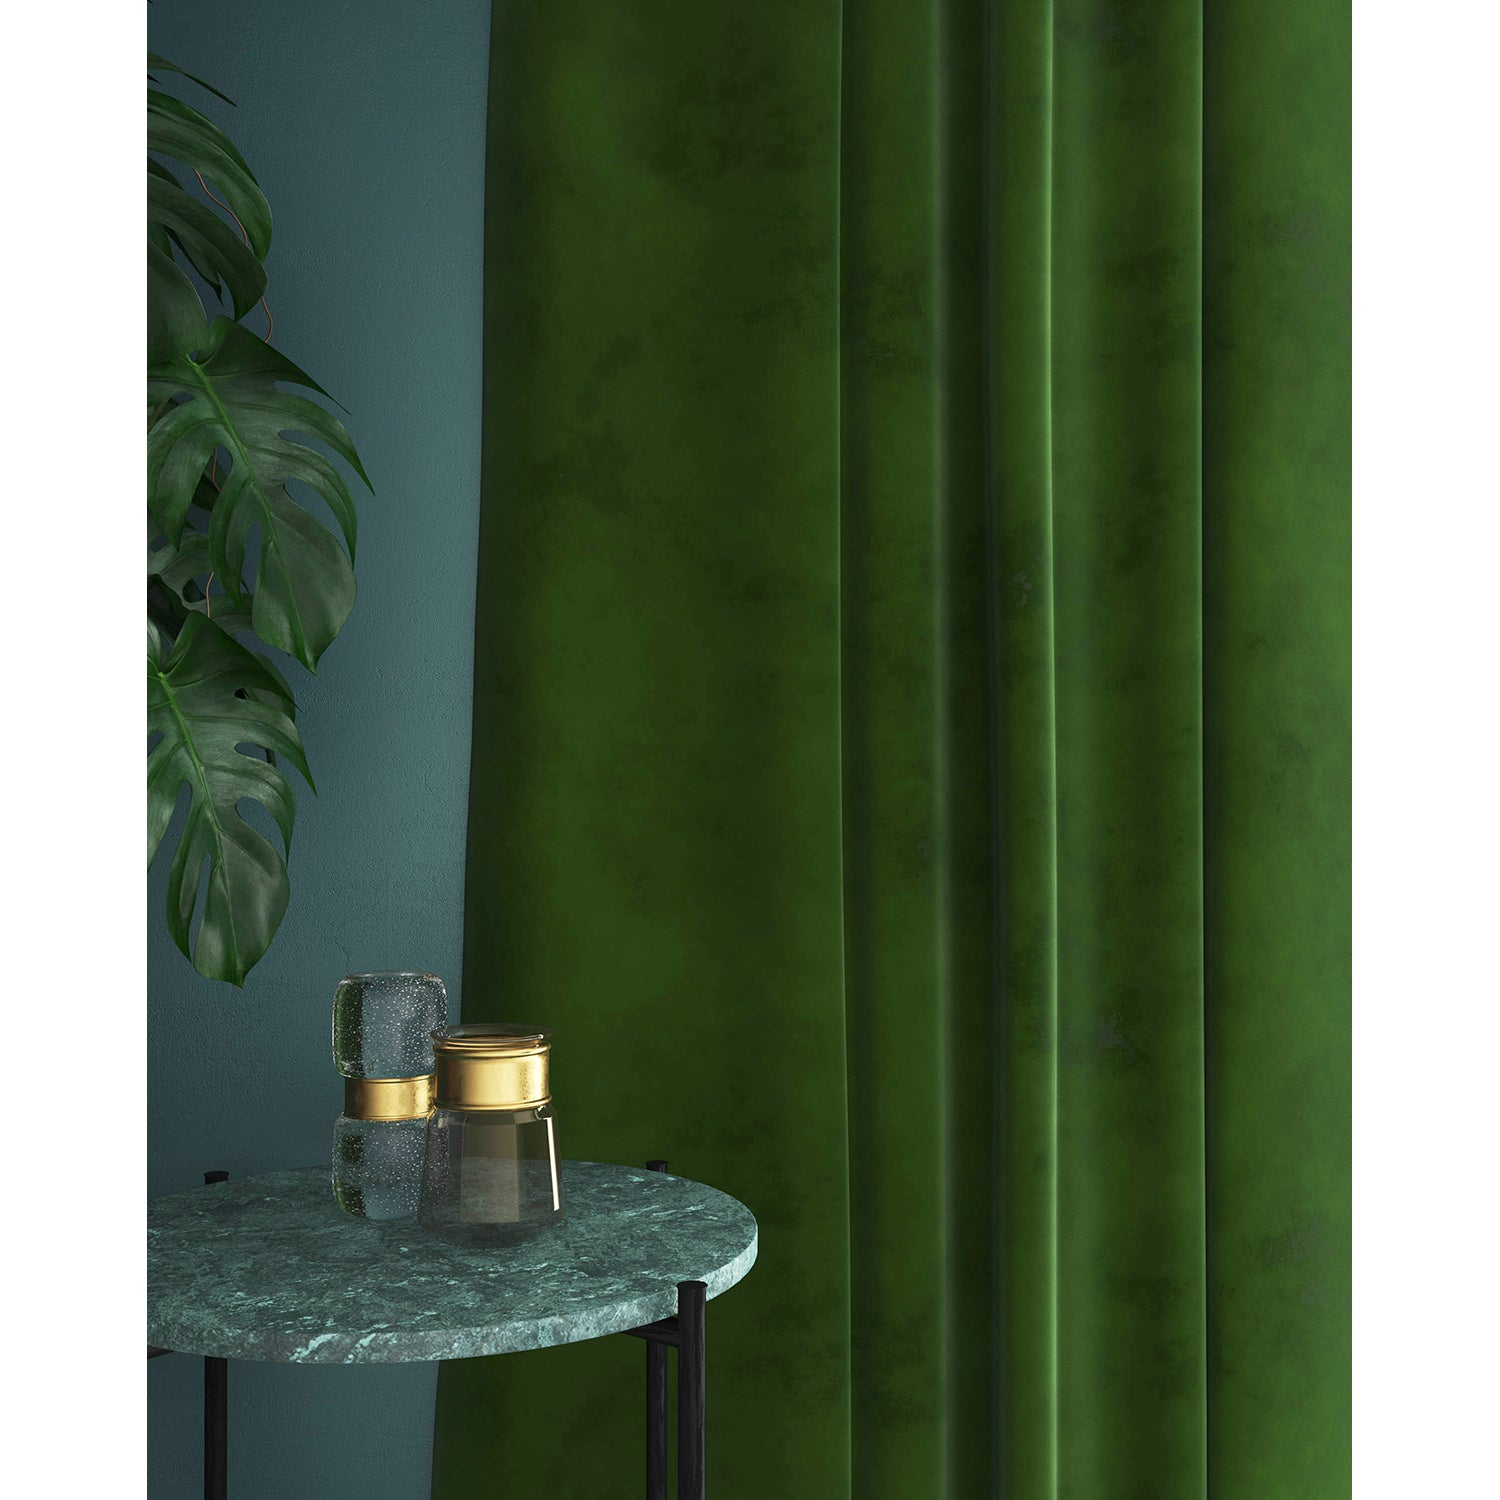 Curtains in a luxury green velvet fabric with a stain resist finish